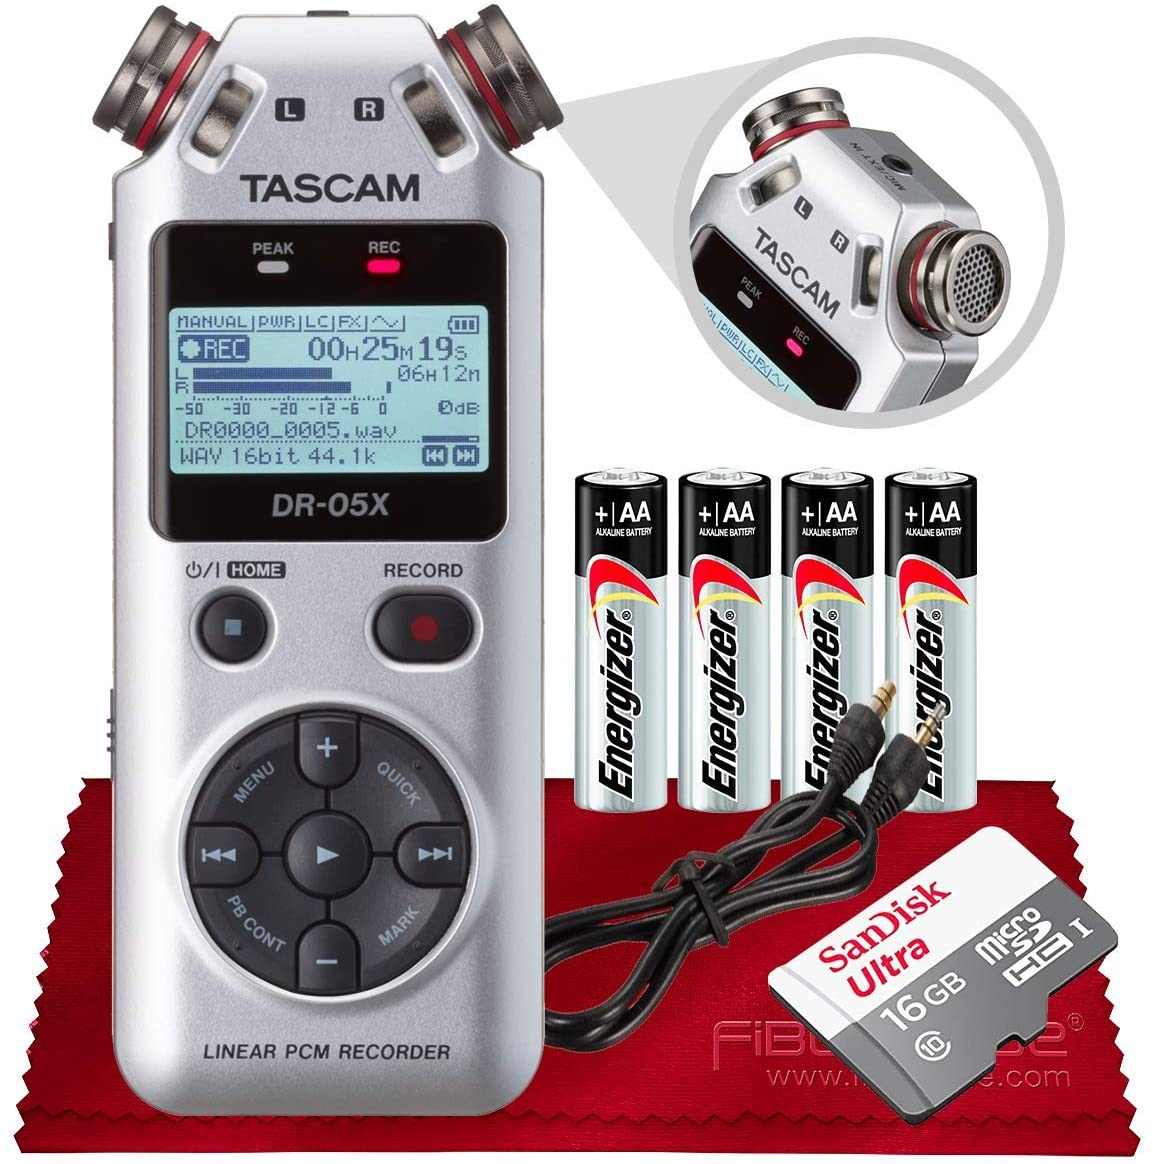 Tascam DR-05X Stereo Handheld Digital Audio Recorder with USB Audio Interface (Silver) + Micro SDHC 16GB, Auxiliary Cable, Batteries & Fibertique Microfiber Cleaning Cloth